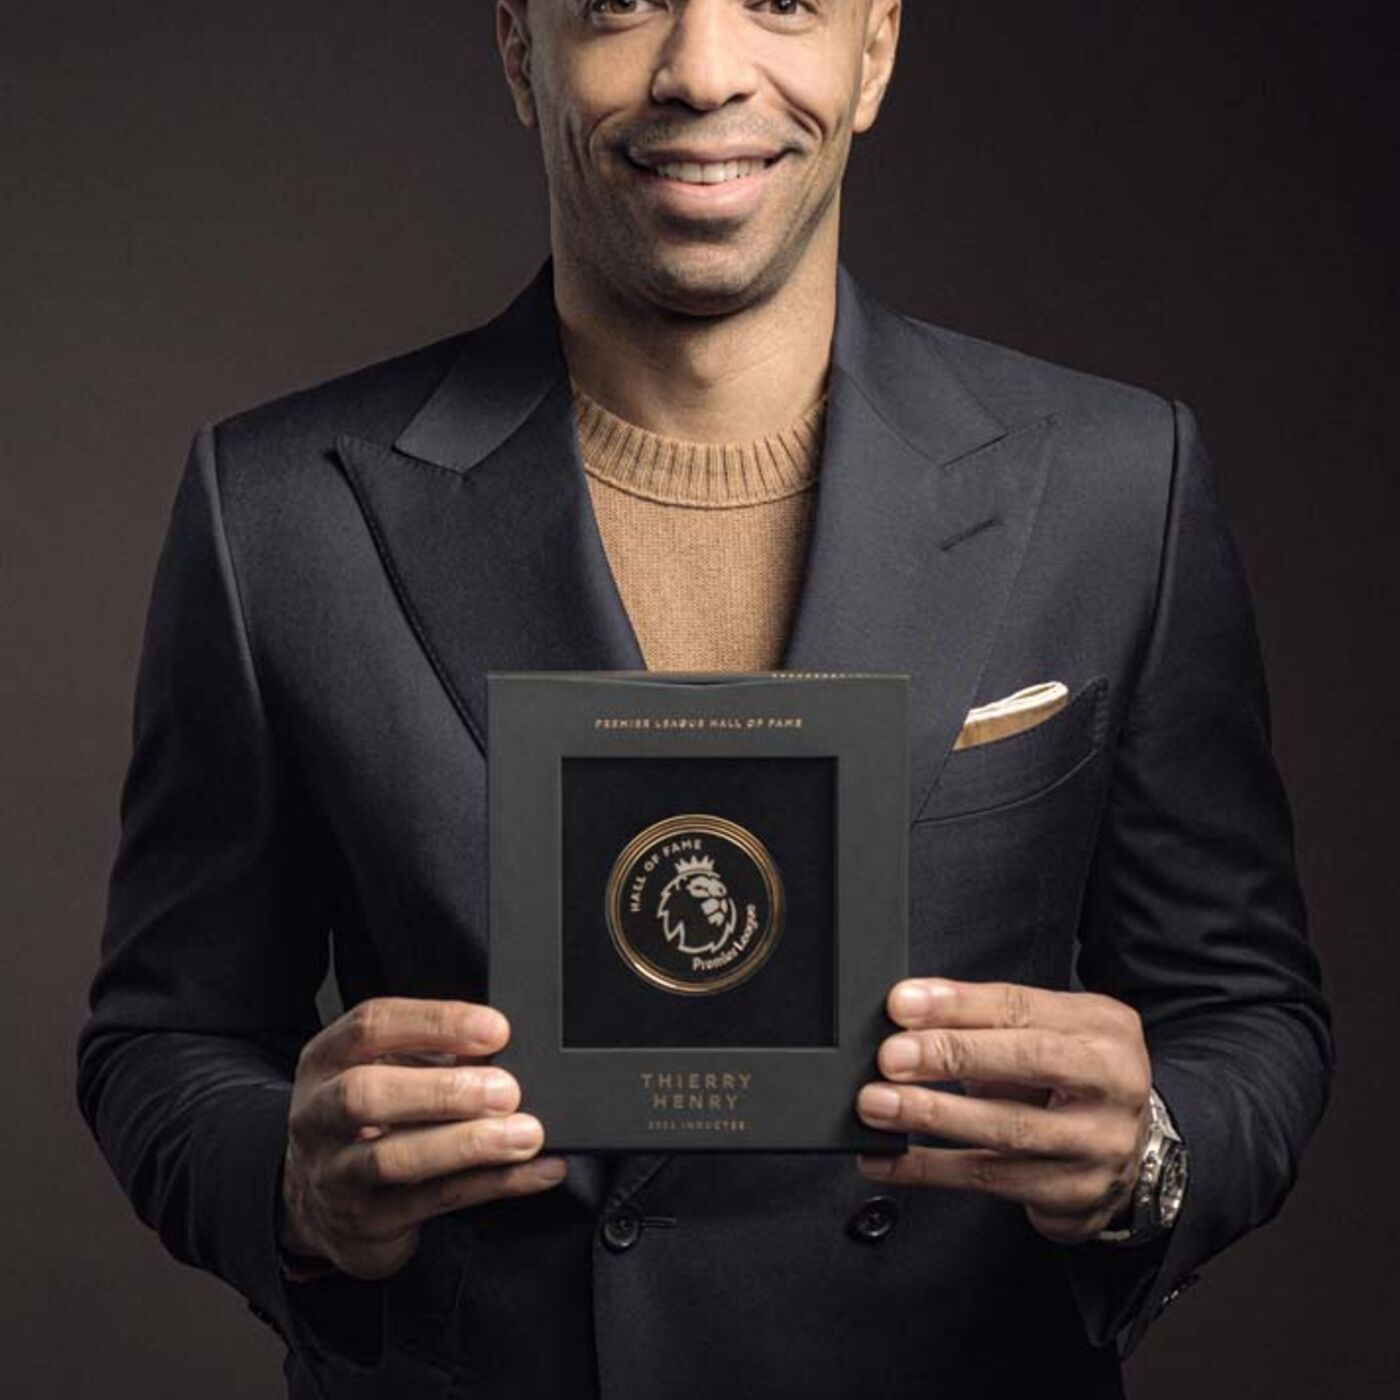 Hall of Fame Henry!